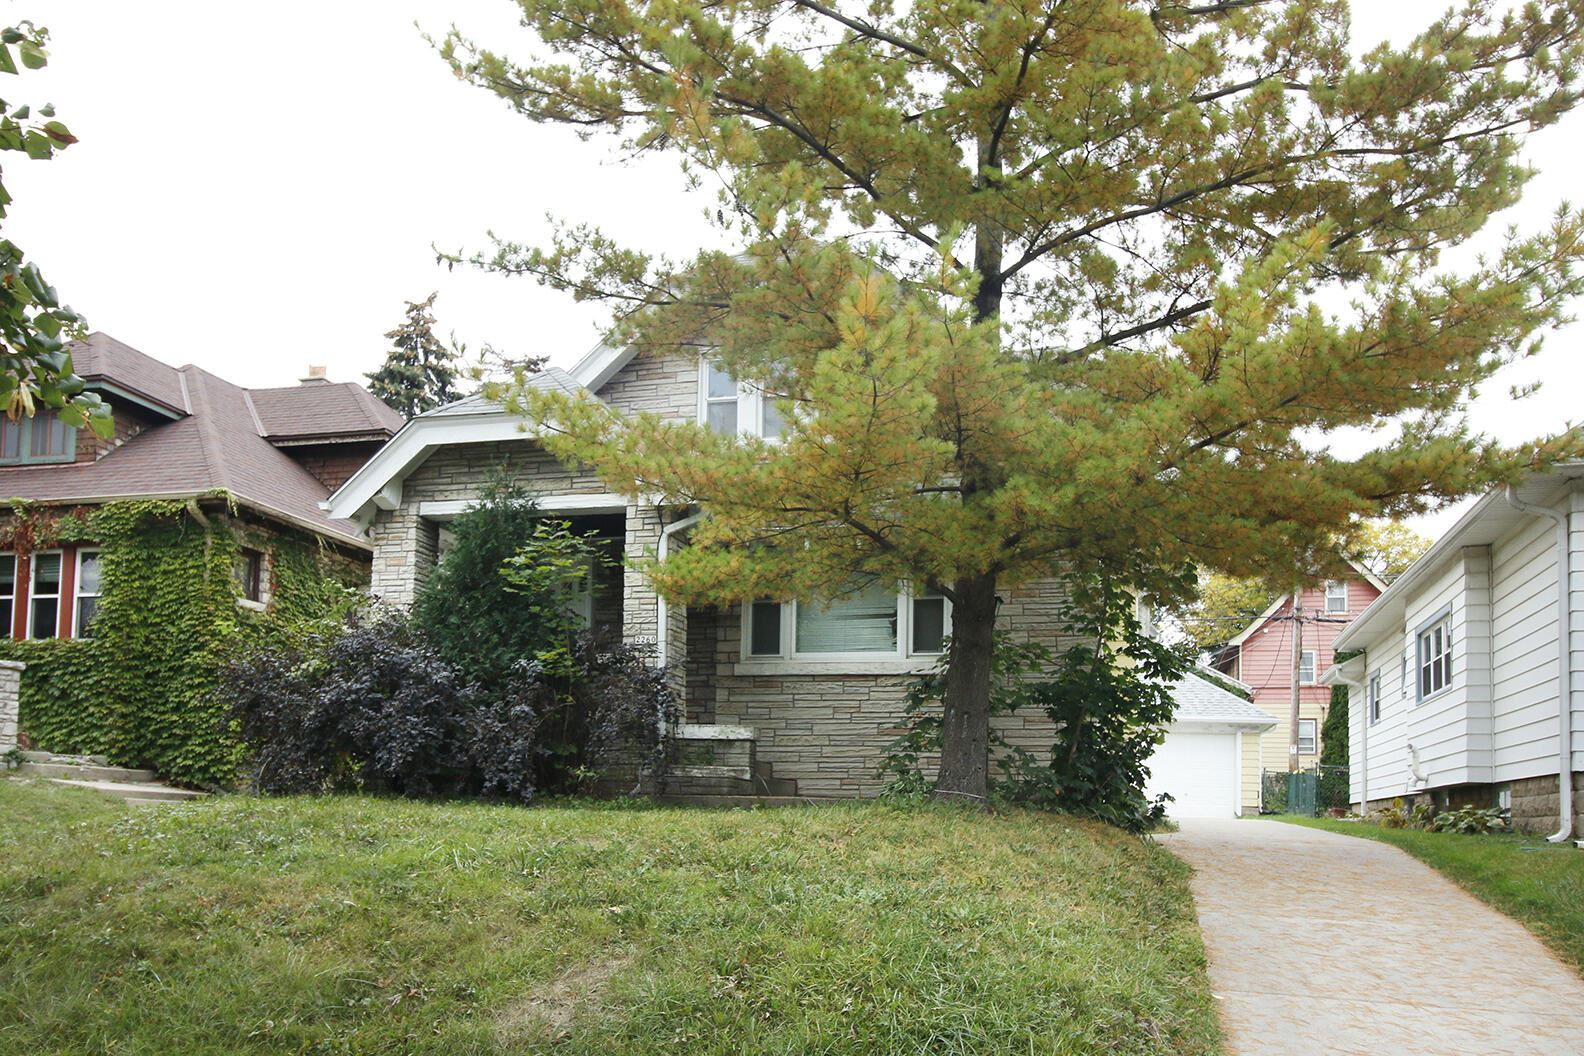 2260 N 63rd St #A, Wauwatosa, WI 53213 - #: 1766362